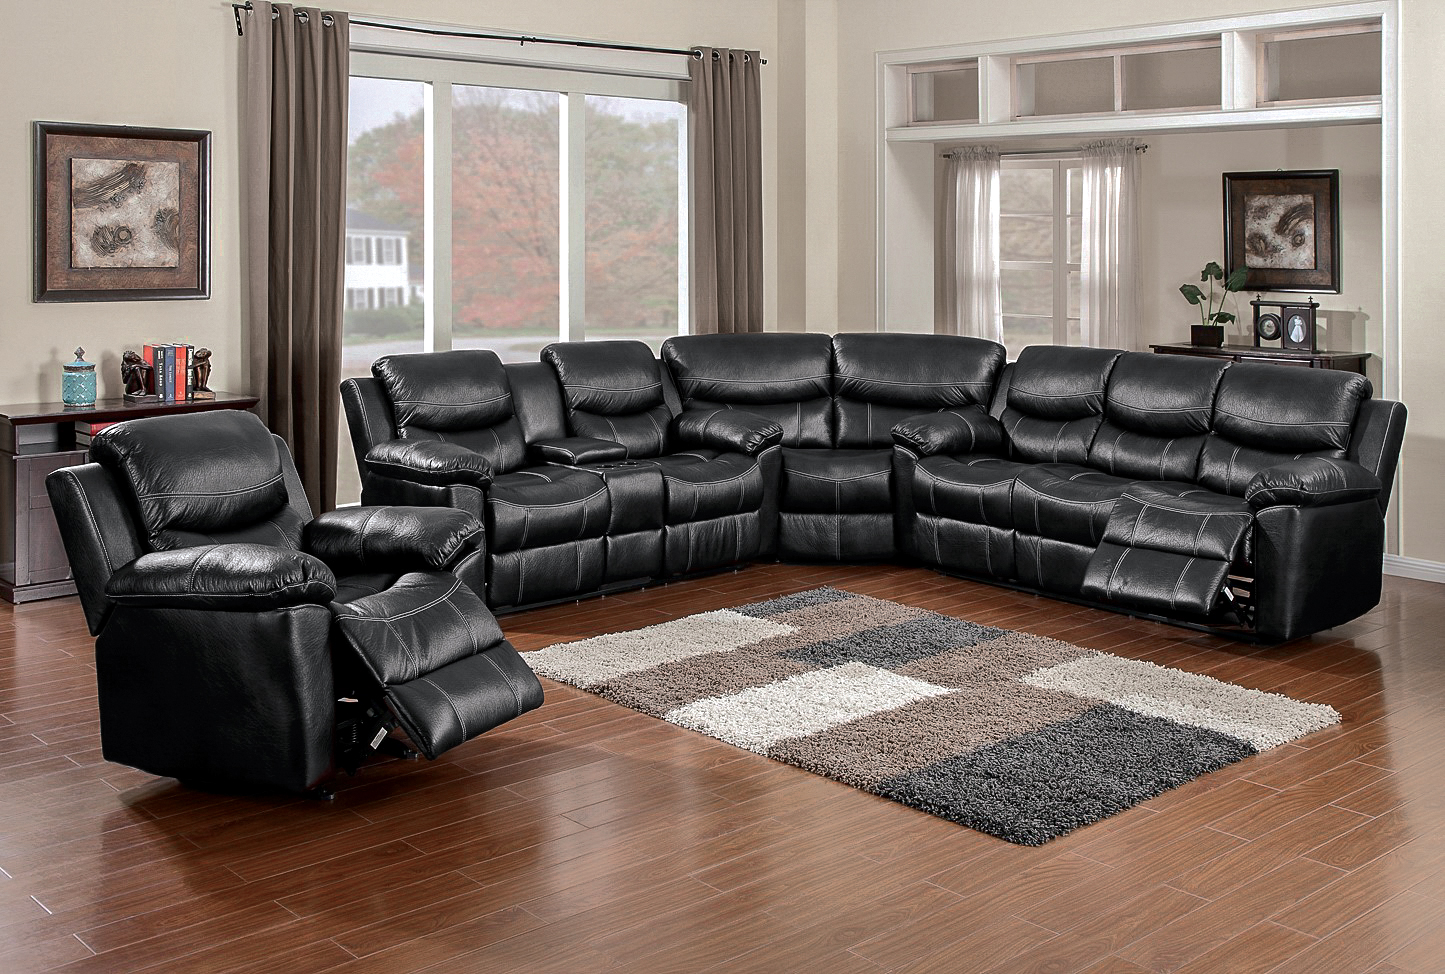 66008 Champion Black Sectional Awfco Catalog Site